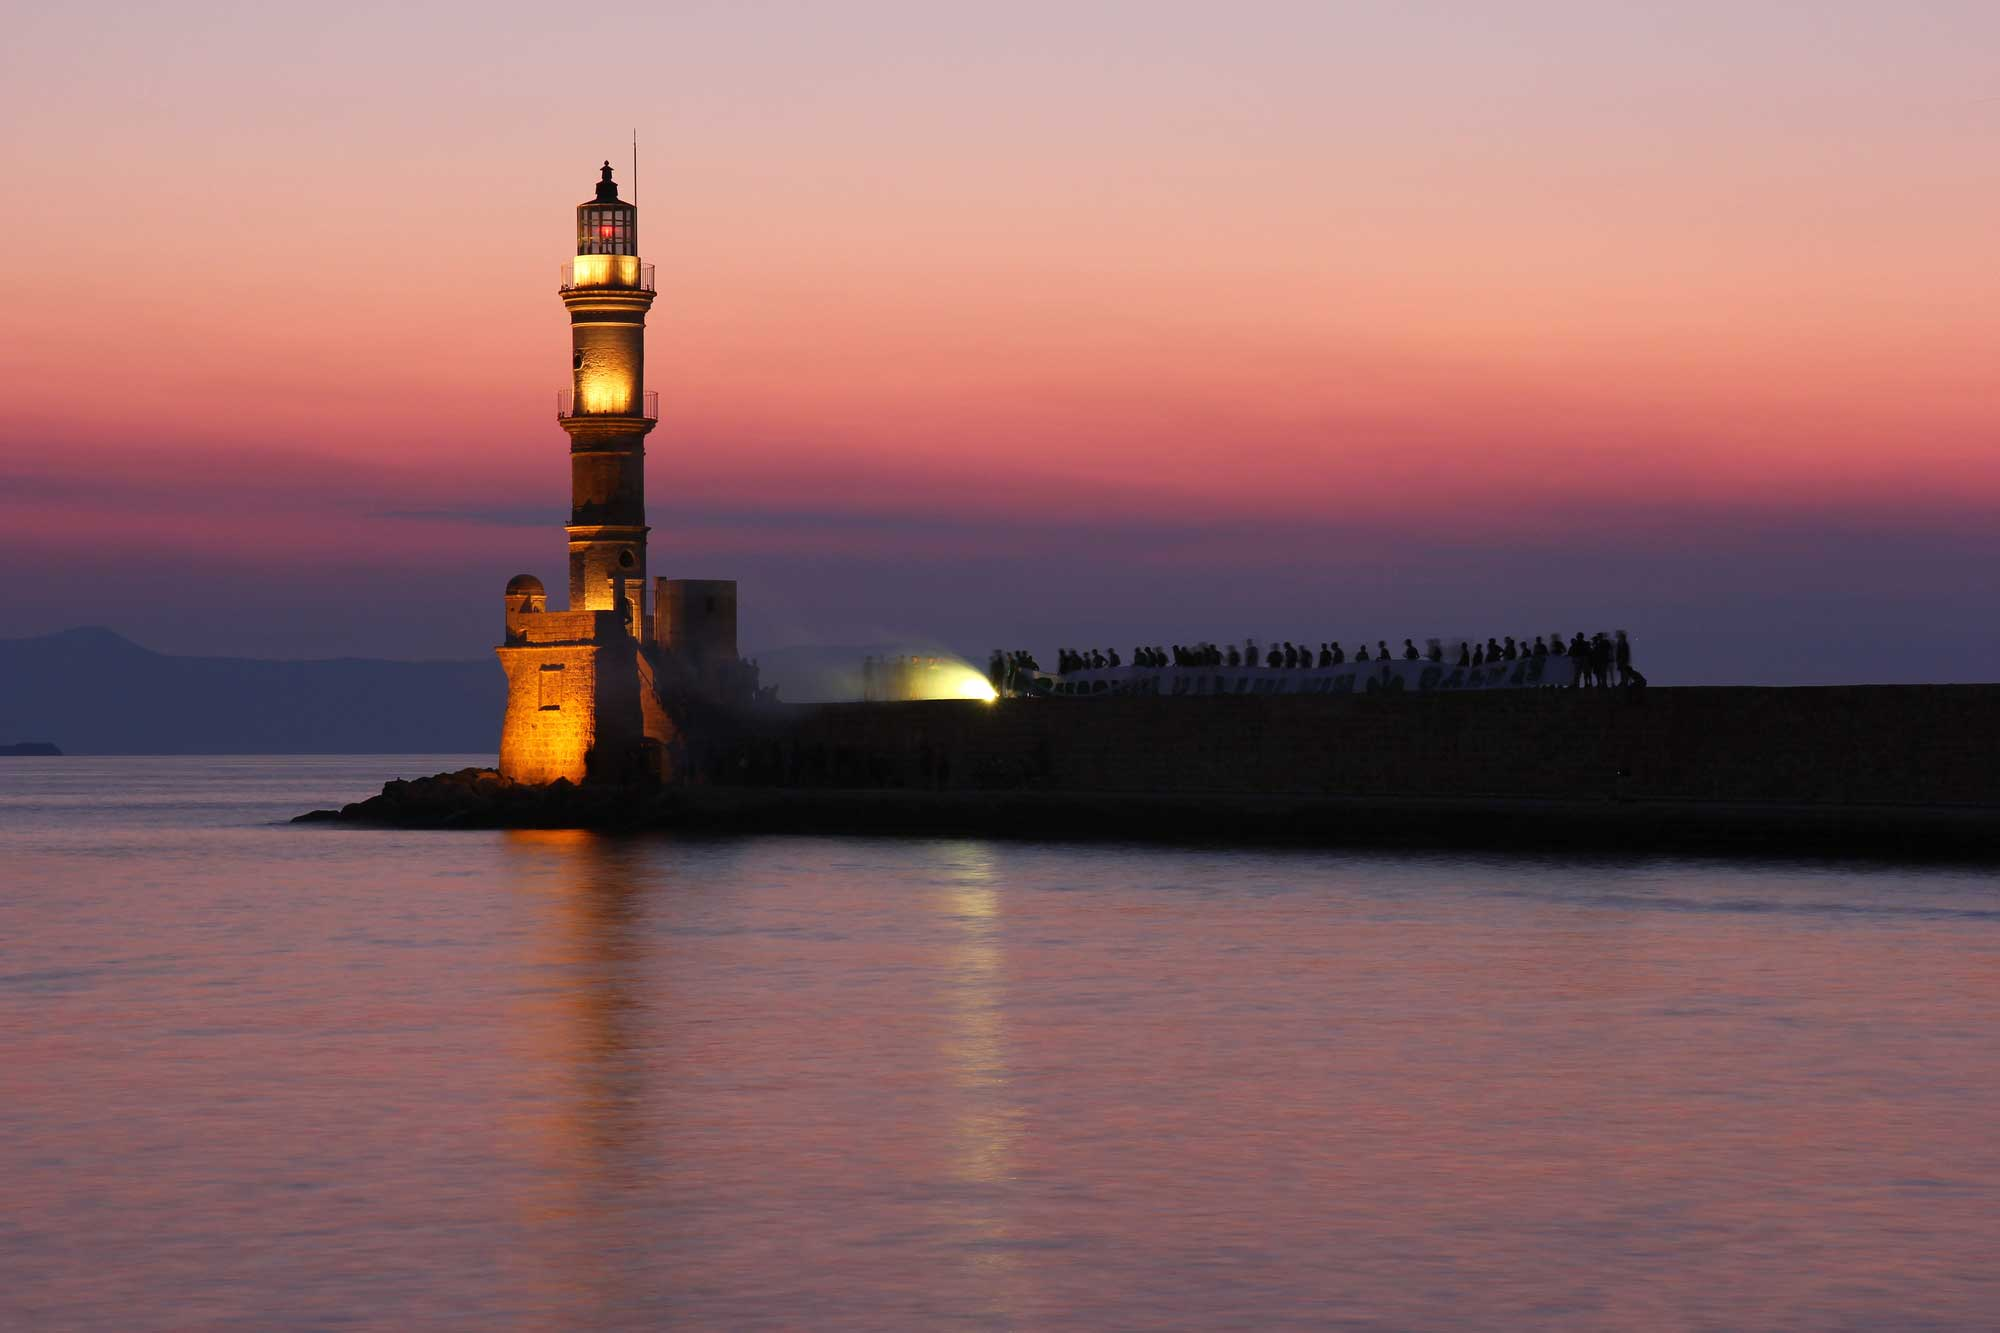 Egyptian Lighthouse In The Venetian Harbor Is The City Symbol Of Chania